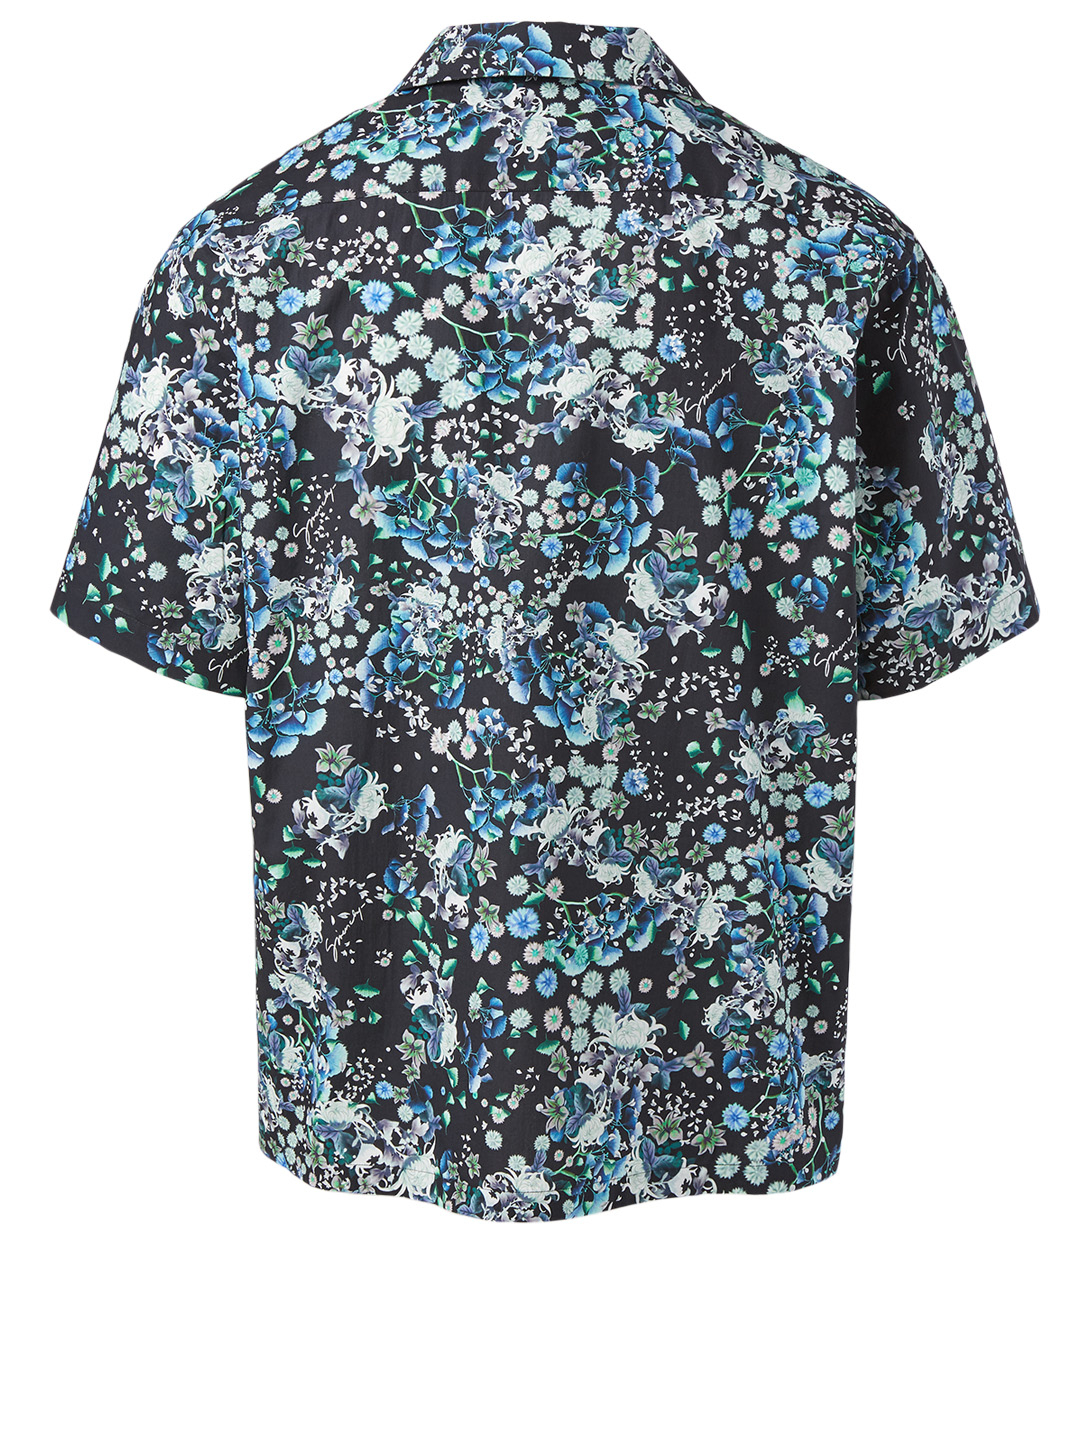 GIVENCHY Cotton Short-Sleeve Shirt In Floral Print Men's Black